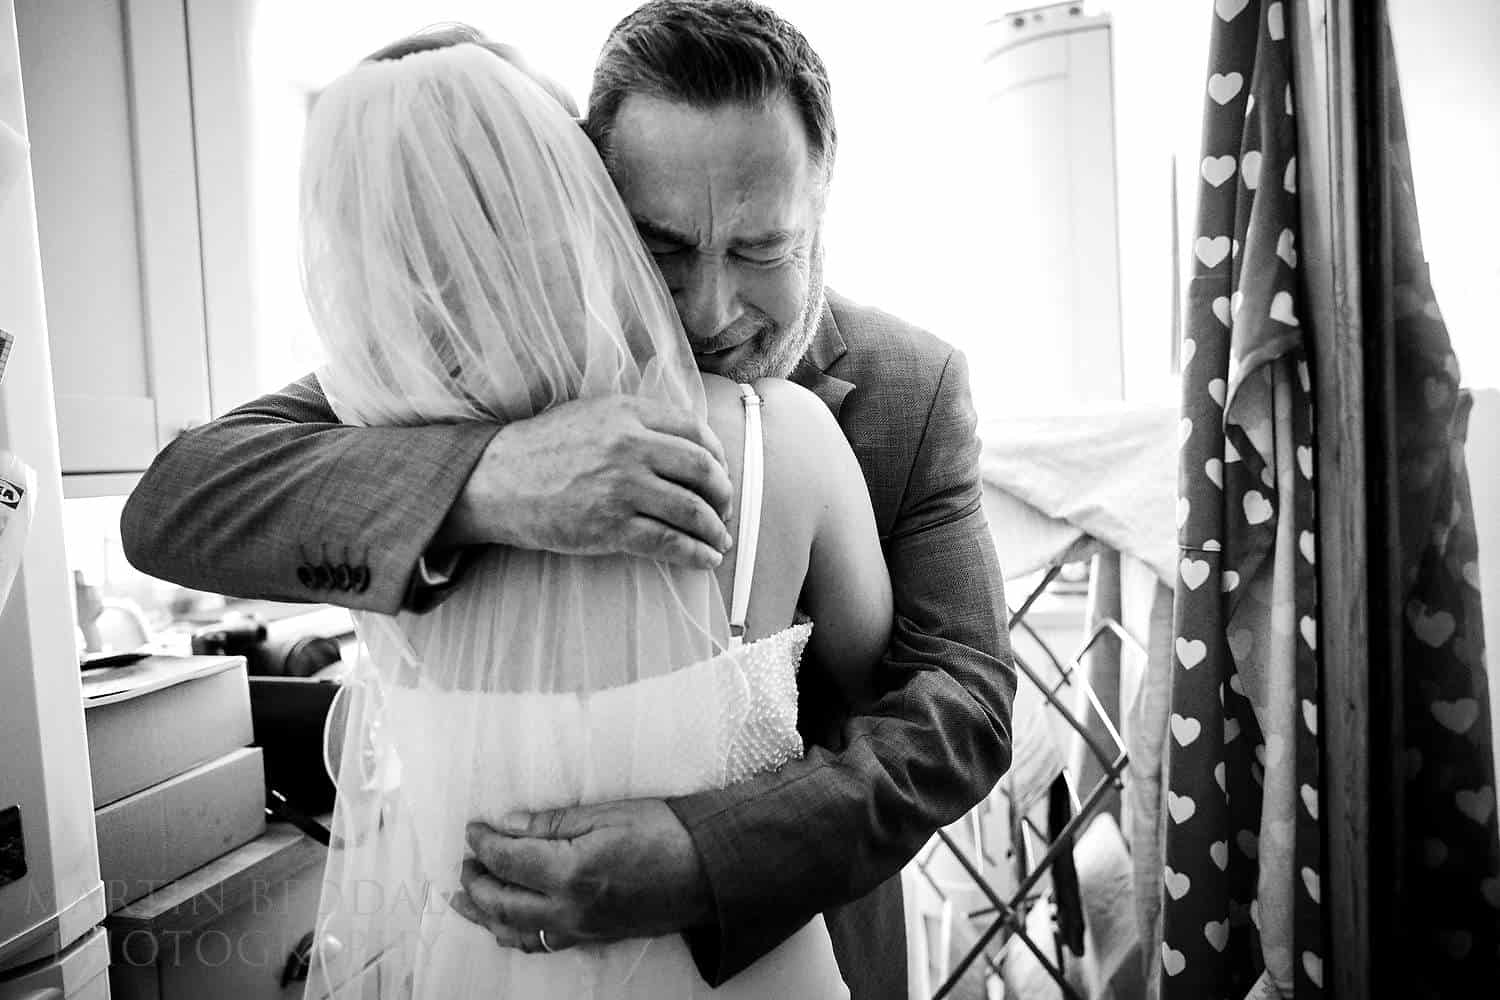 Hug for the bride from her emotional father